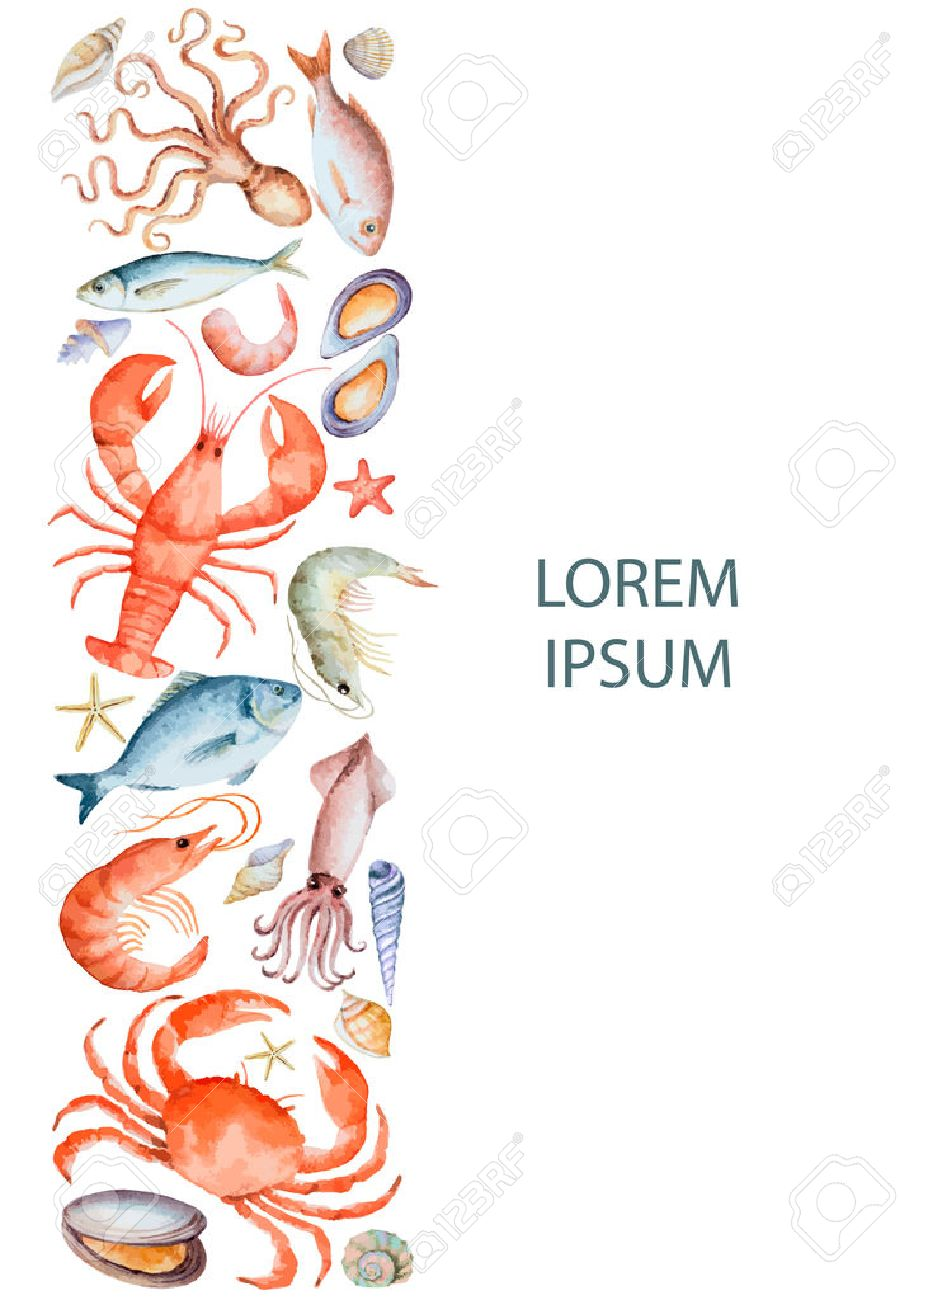 Watercolor set of seafood from lobster, crab, fish, squid, octopus, shrimp, shells on a white background for your menu or design, vector illustration. - 39281283